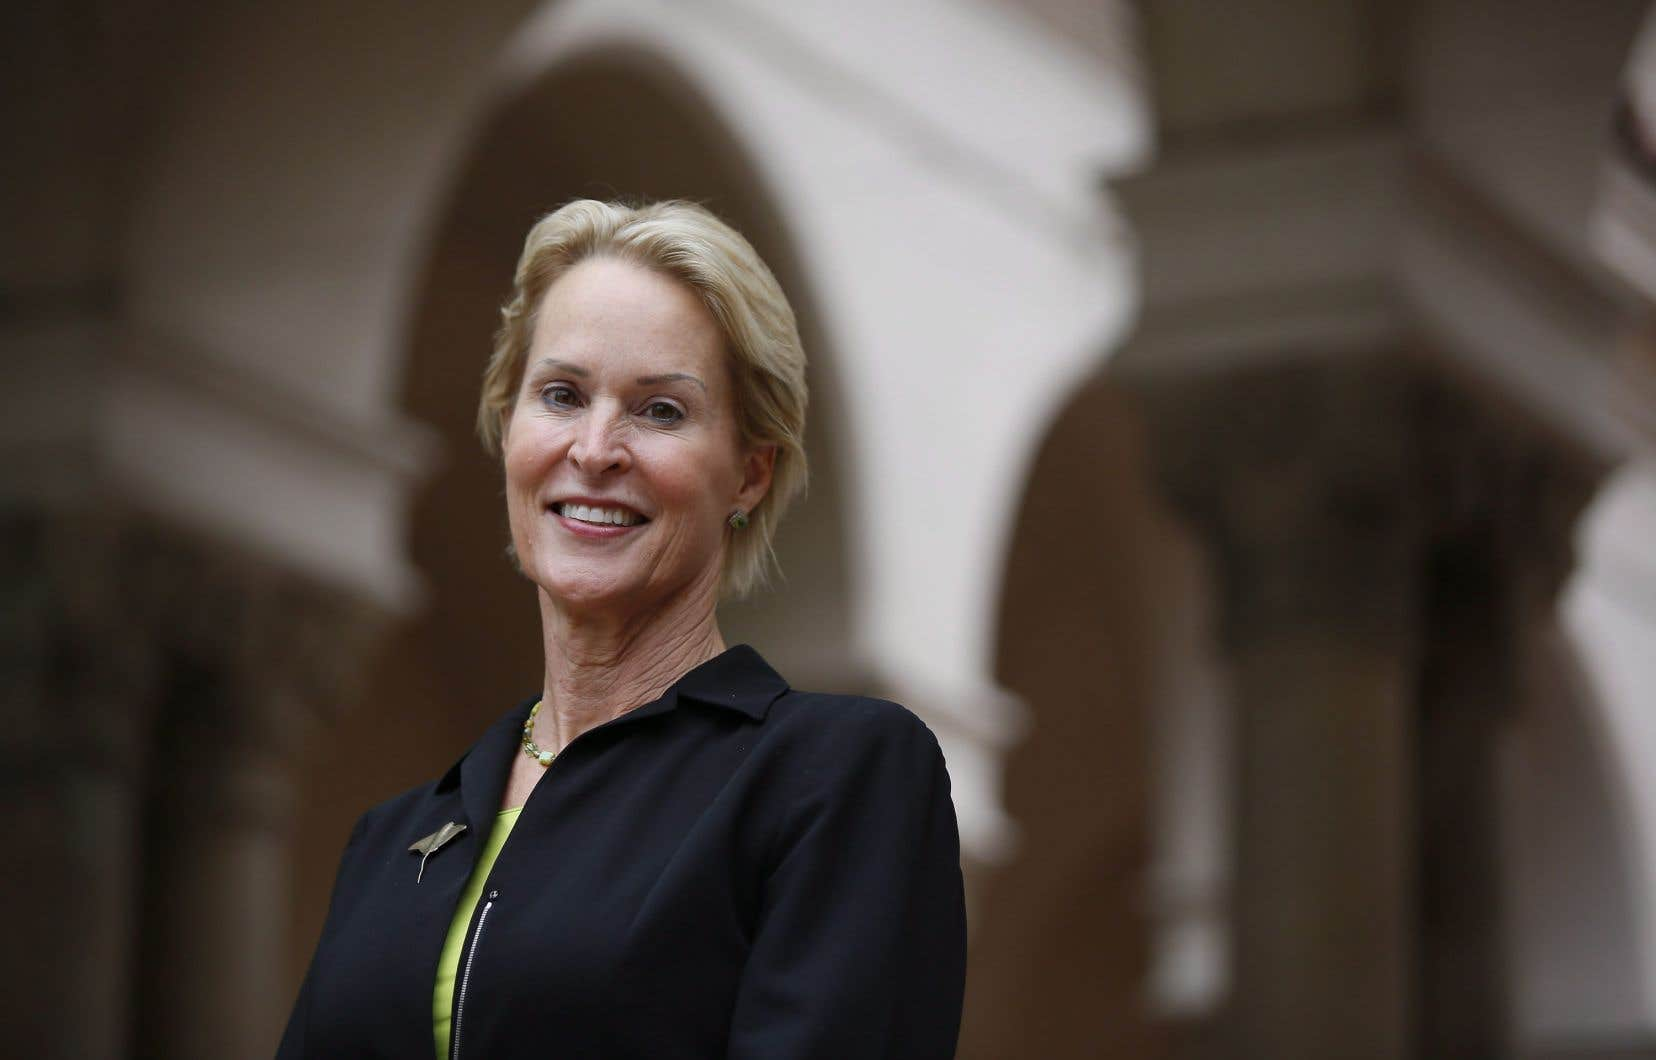 La lauréate du prix Nobel de chimie en 2018, l'Américaine Frances Arnold, professeur au California Institute of Technology